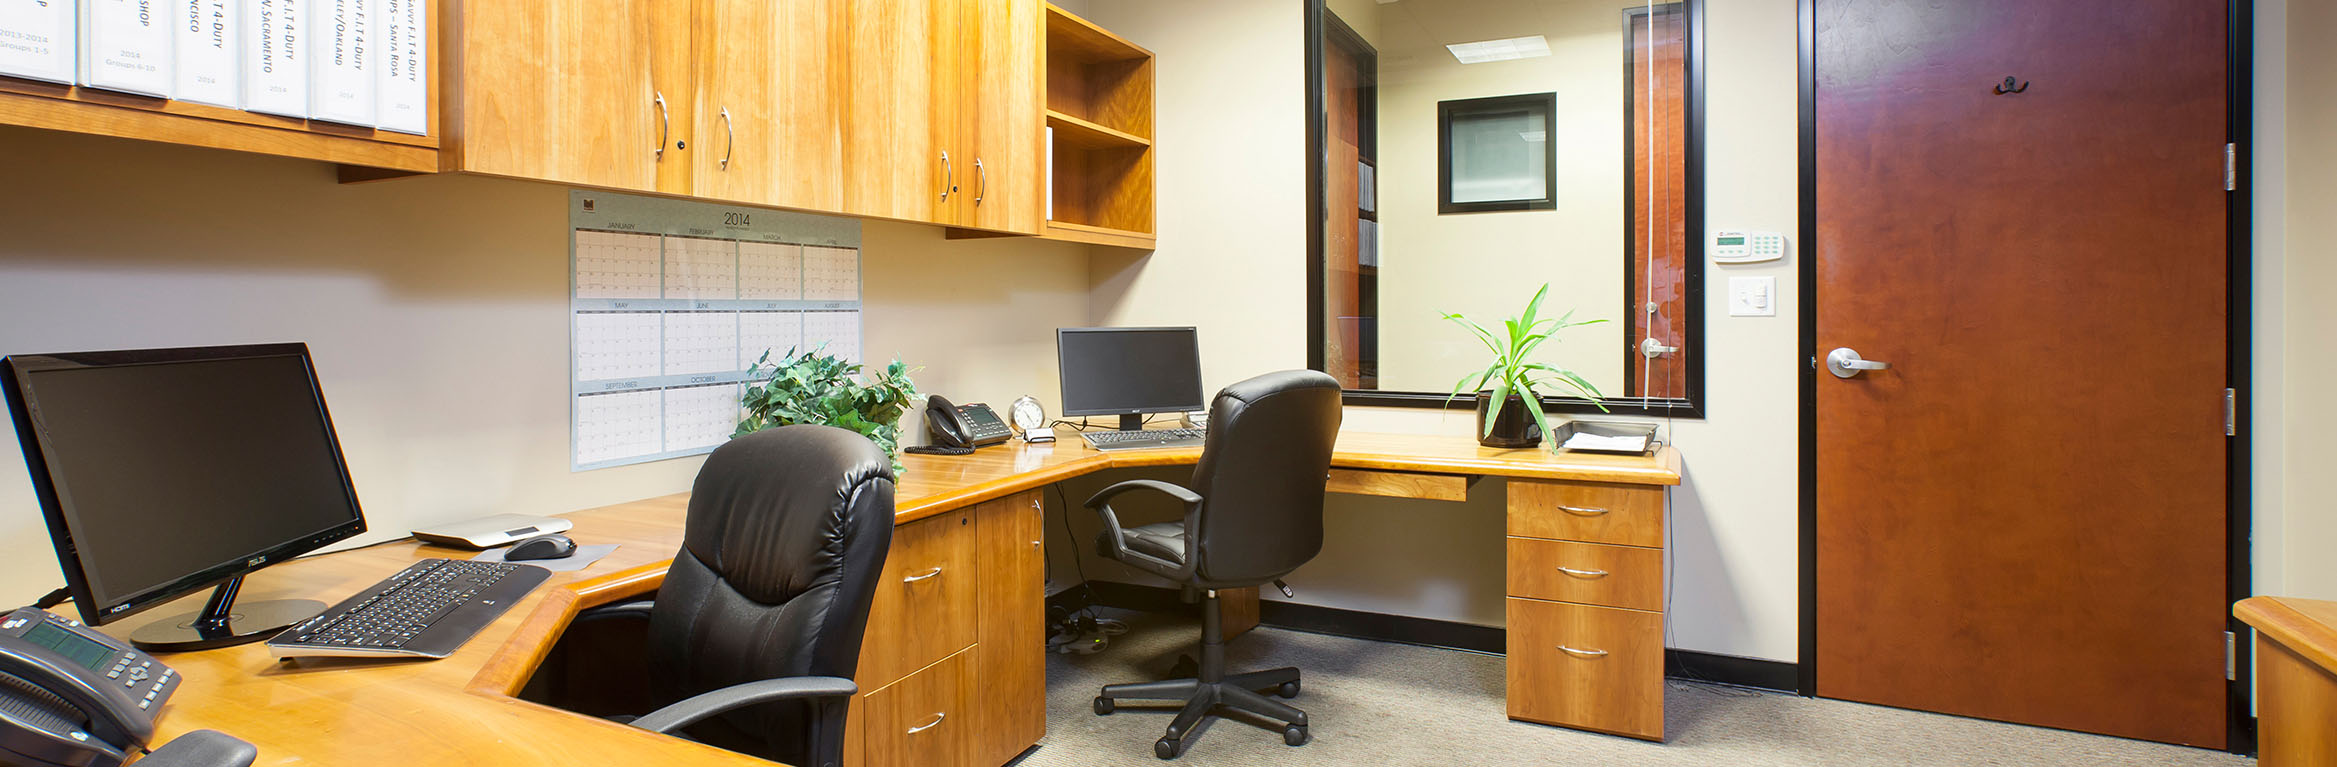 Shared office space in Sacramento